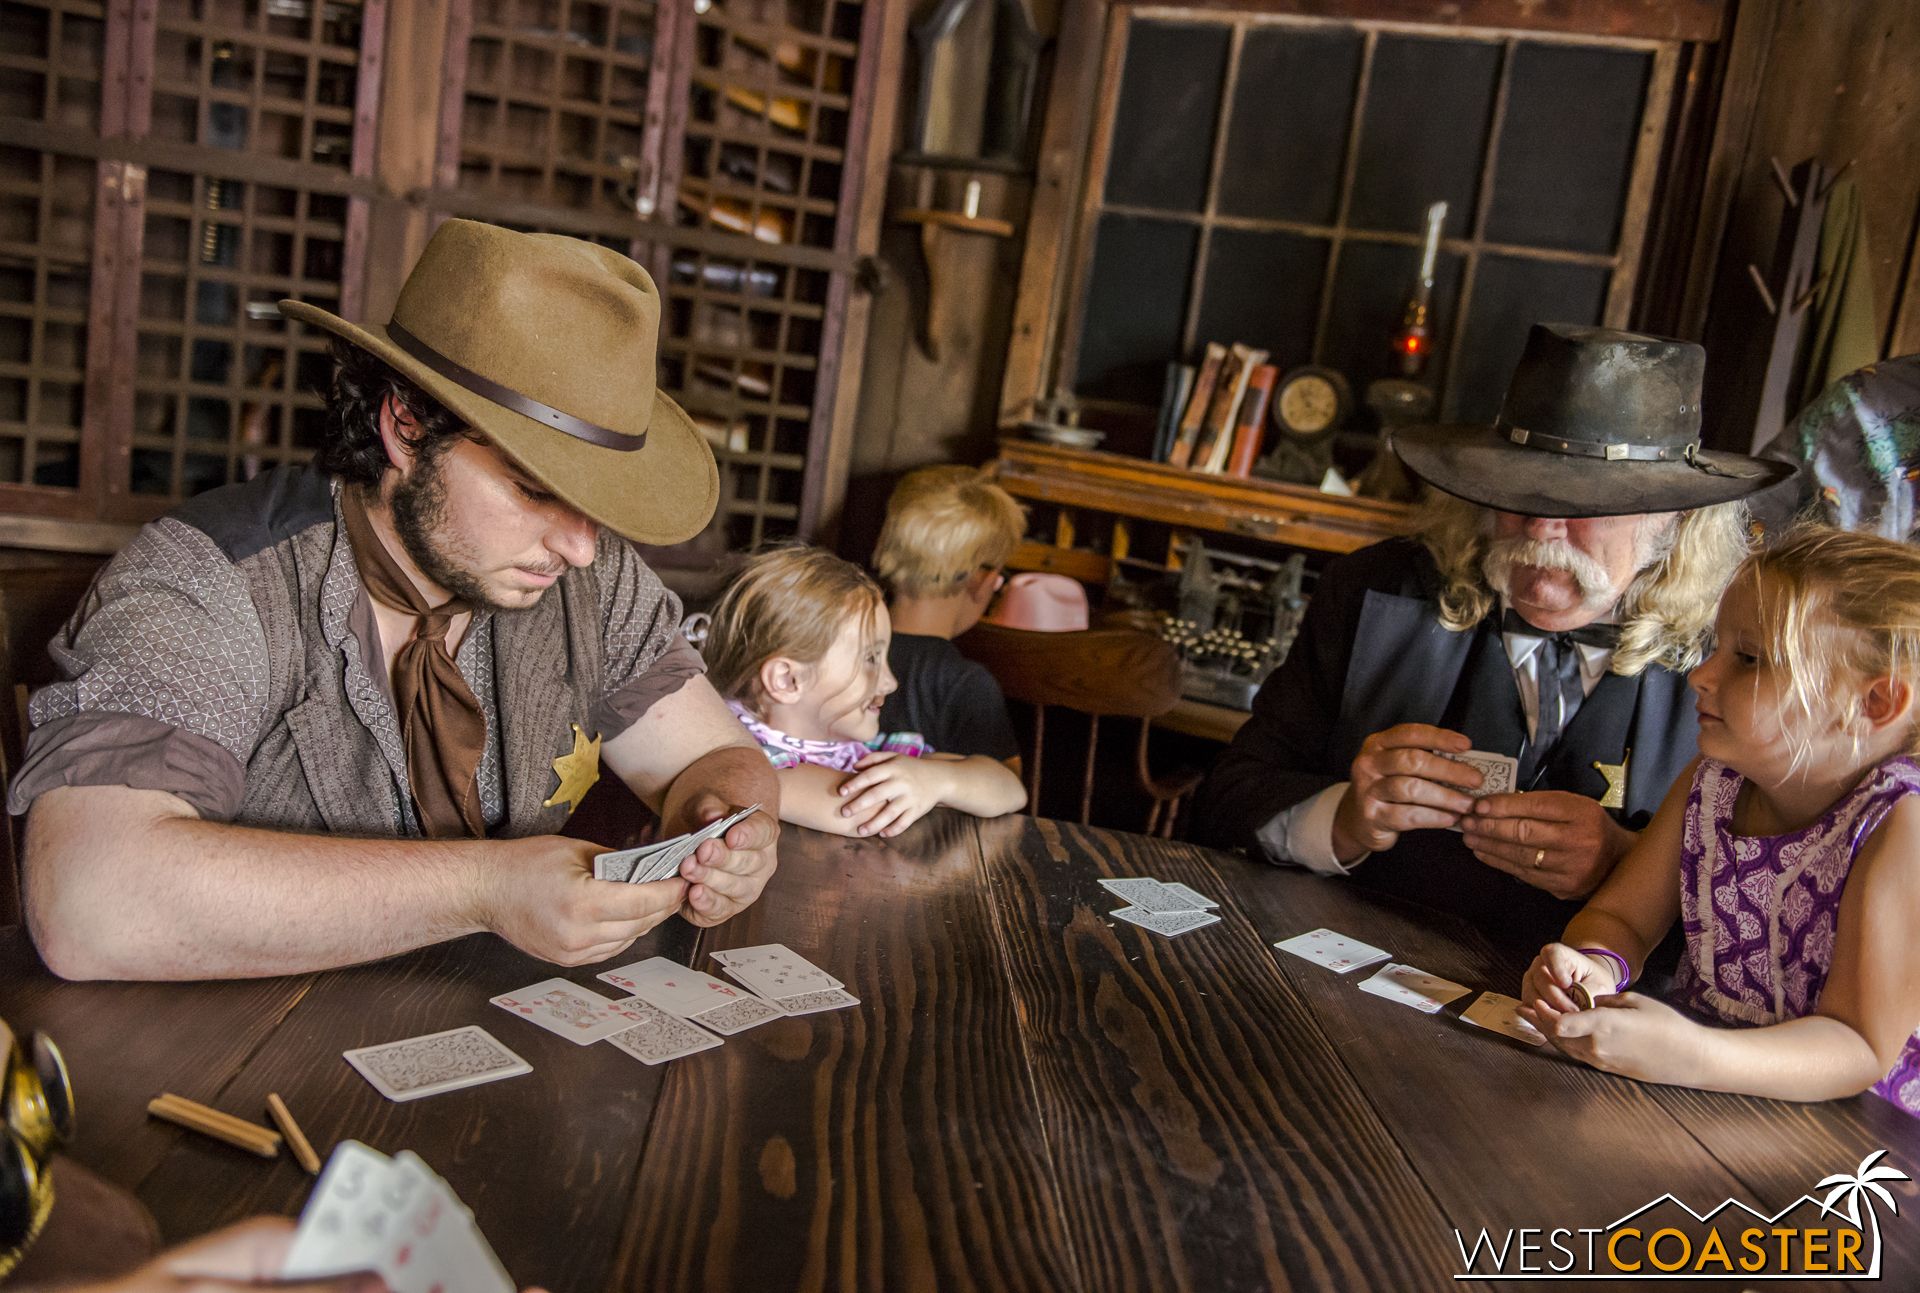 Guests play cards with the Calico sheriff force in Ghost Town.